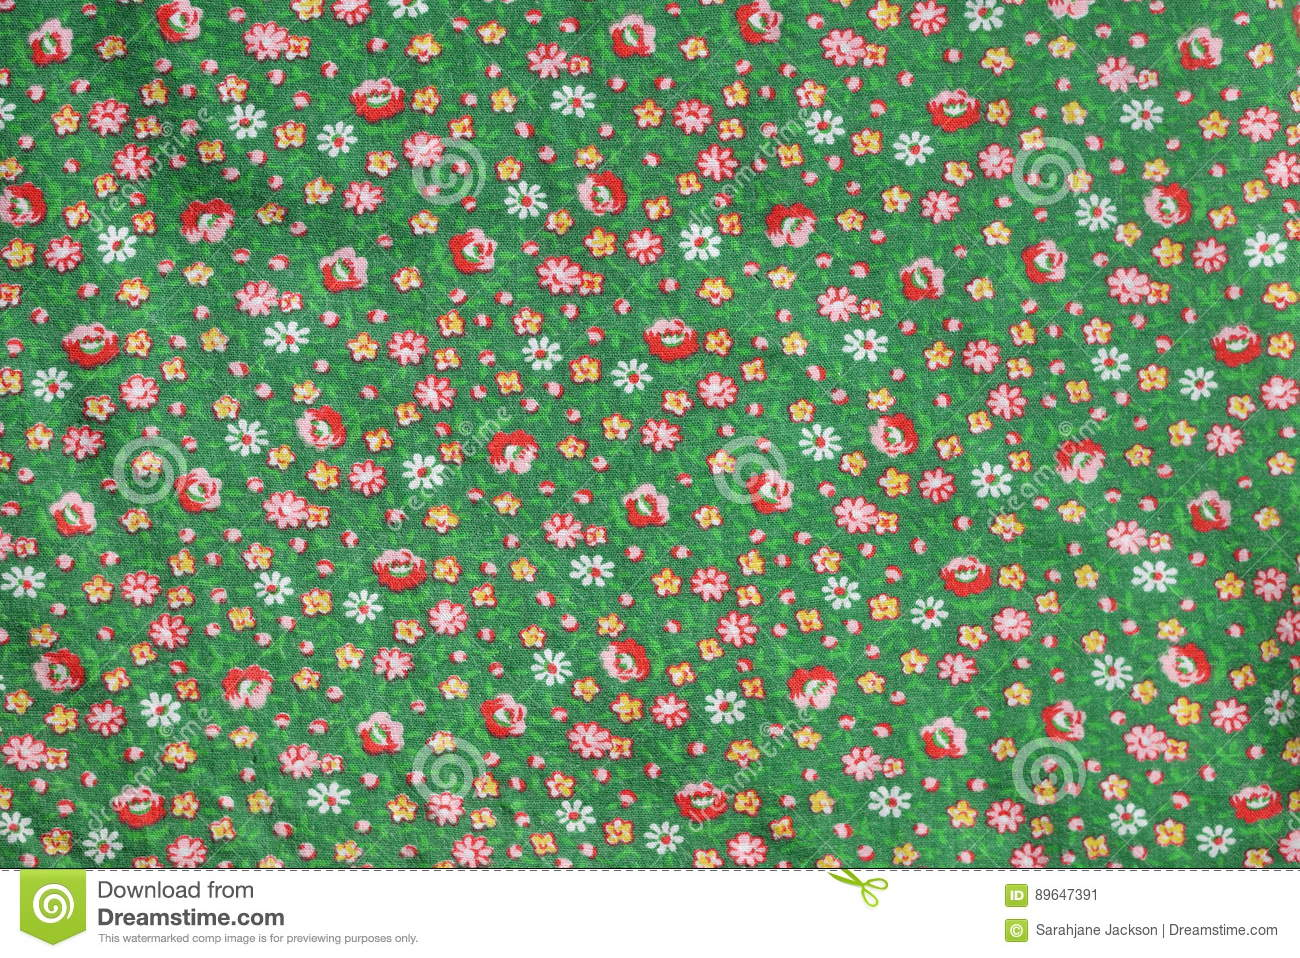 Vintage real fabric 1960s cotton emerald green with red roses and yellow flower pattern